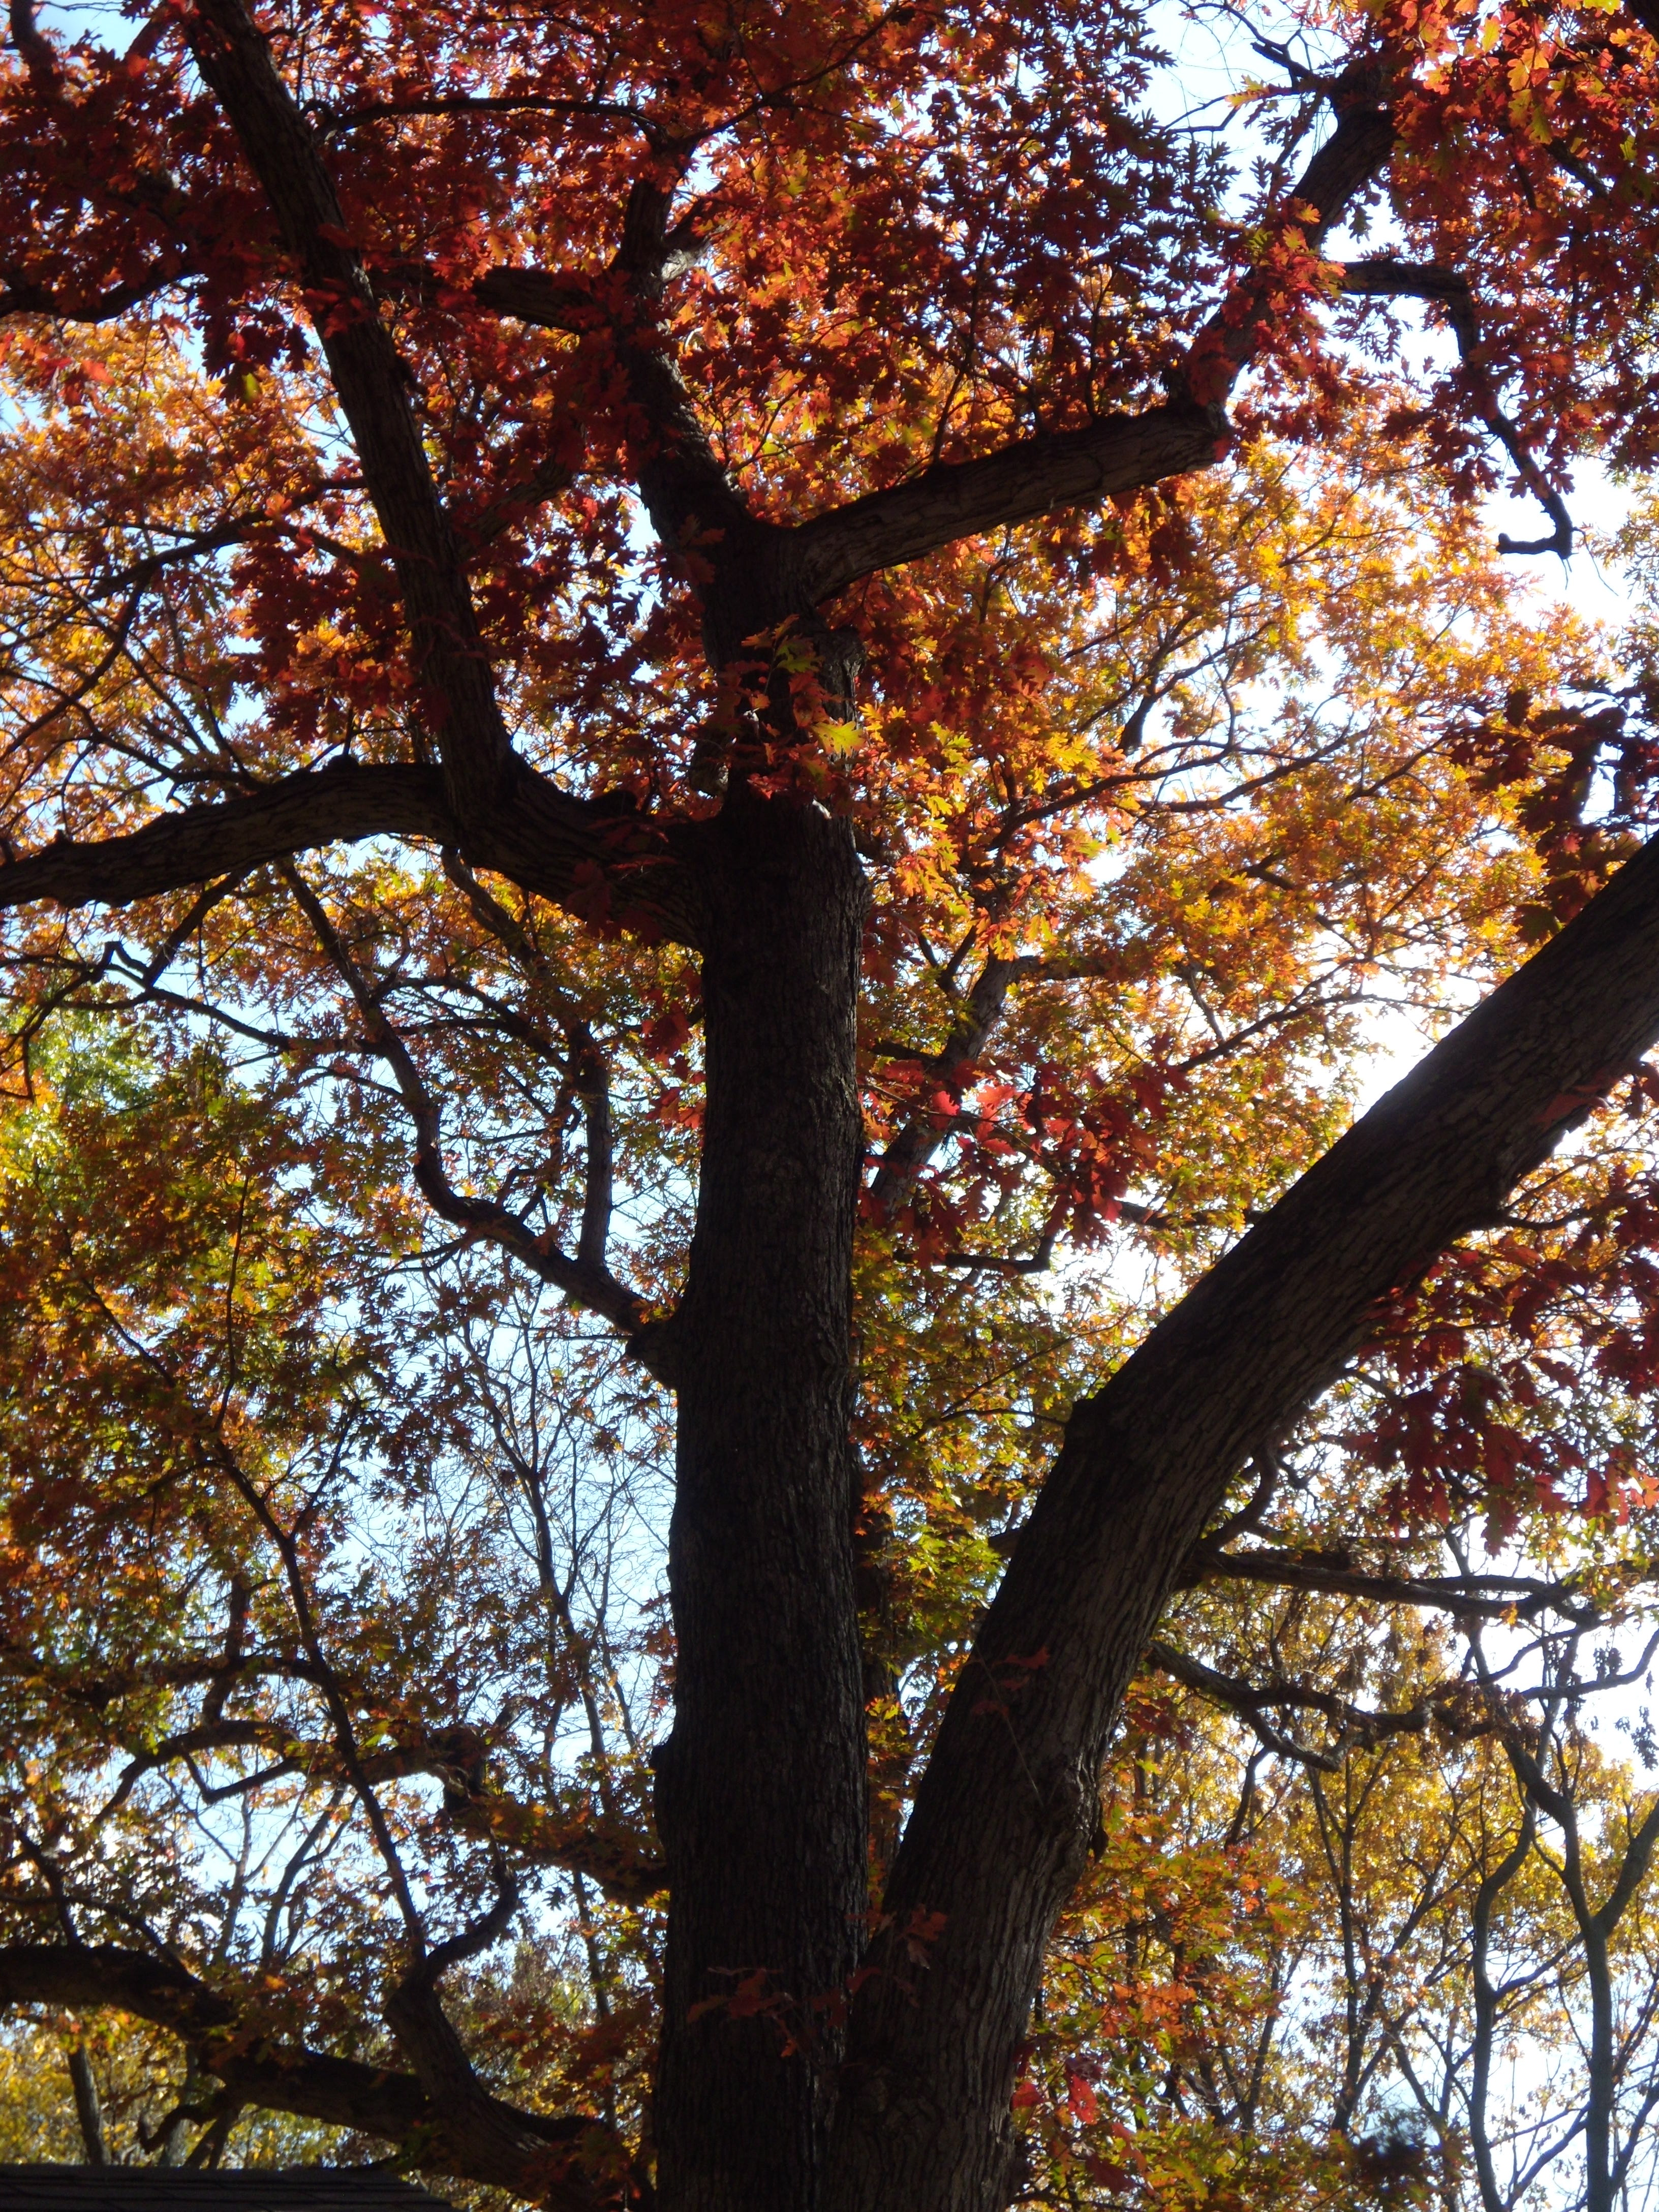 Autumn: A Time of Atonement and Bounty